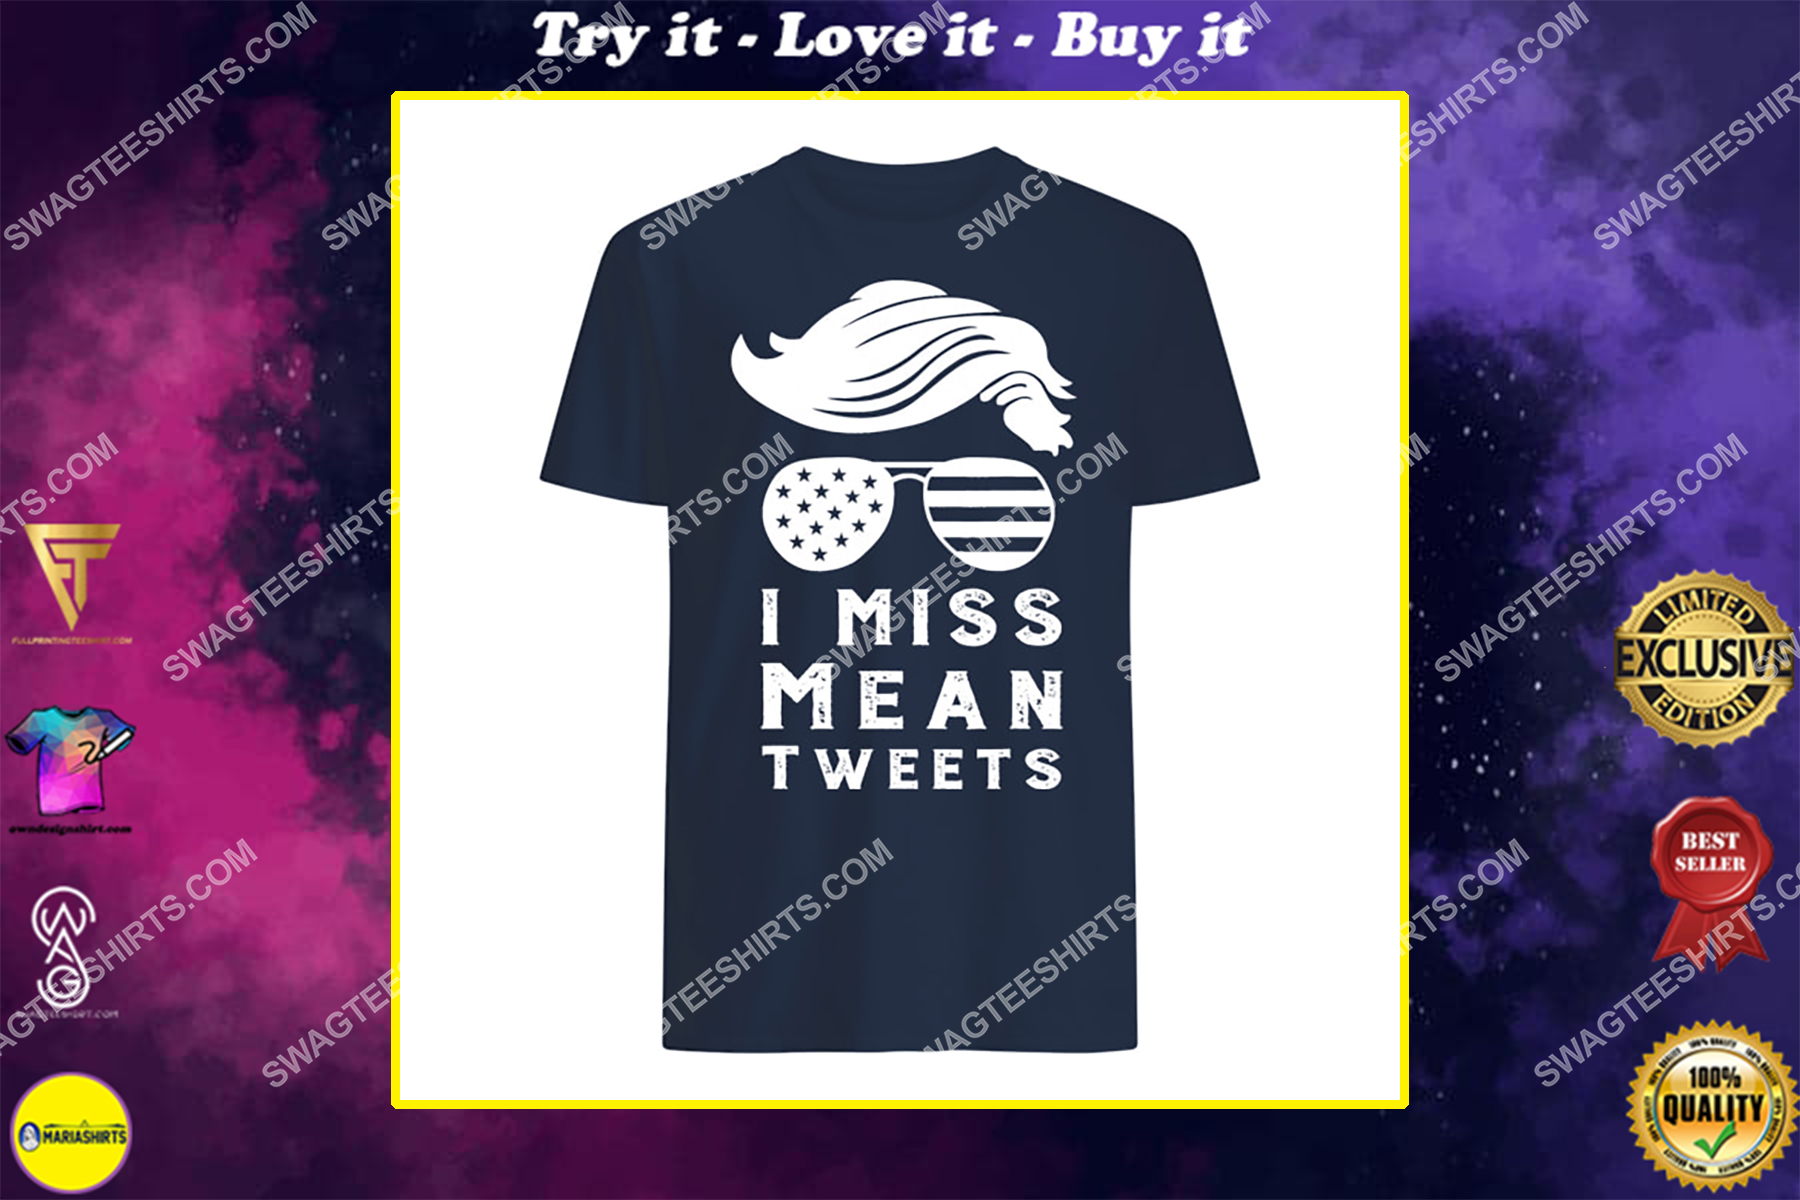 trump father's day gas prices i miss mean tweets july 4th shirt